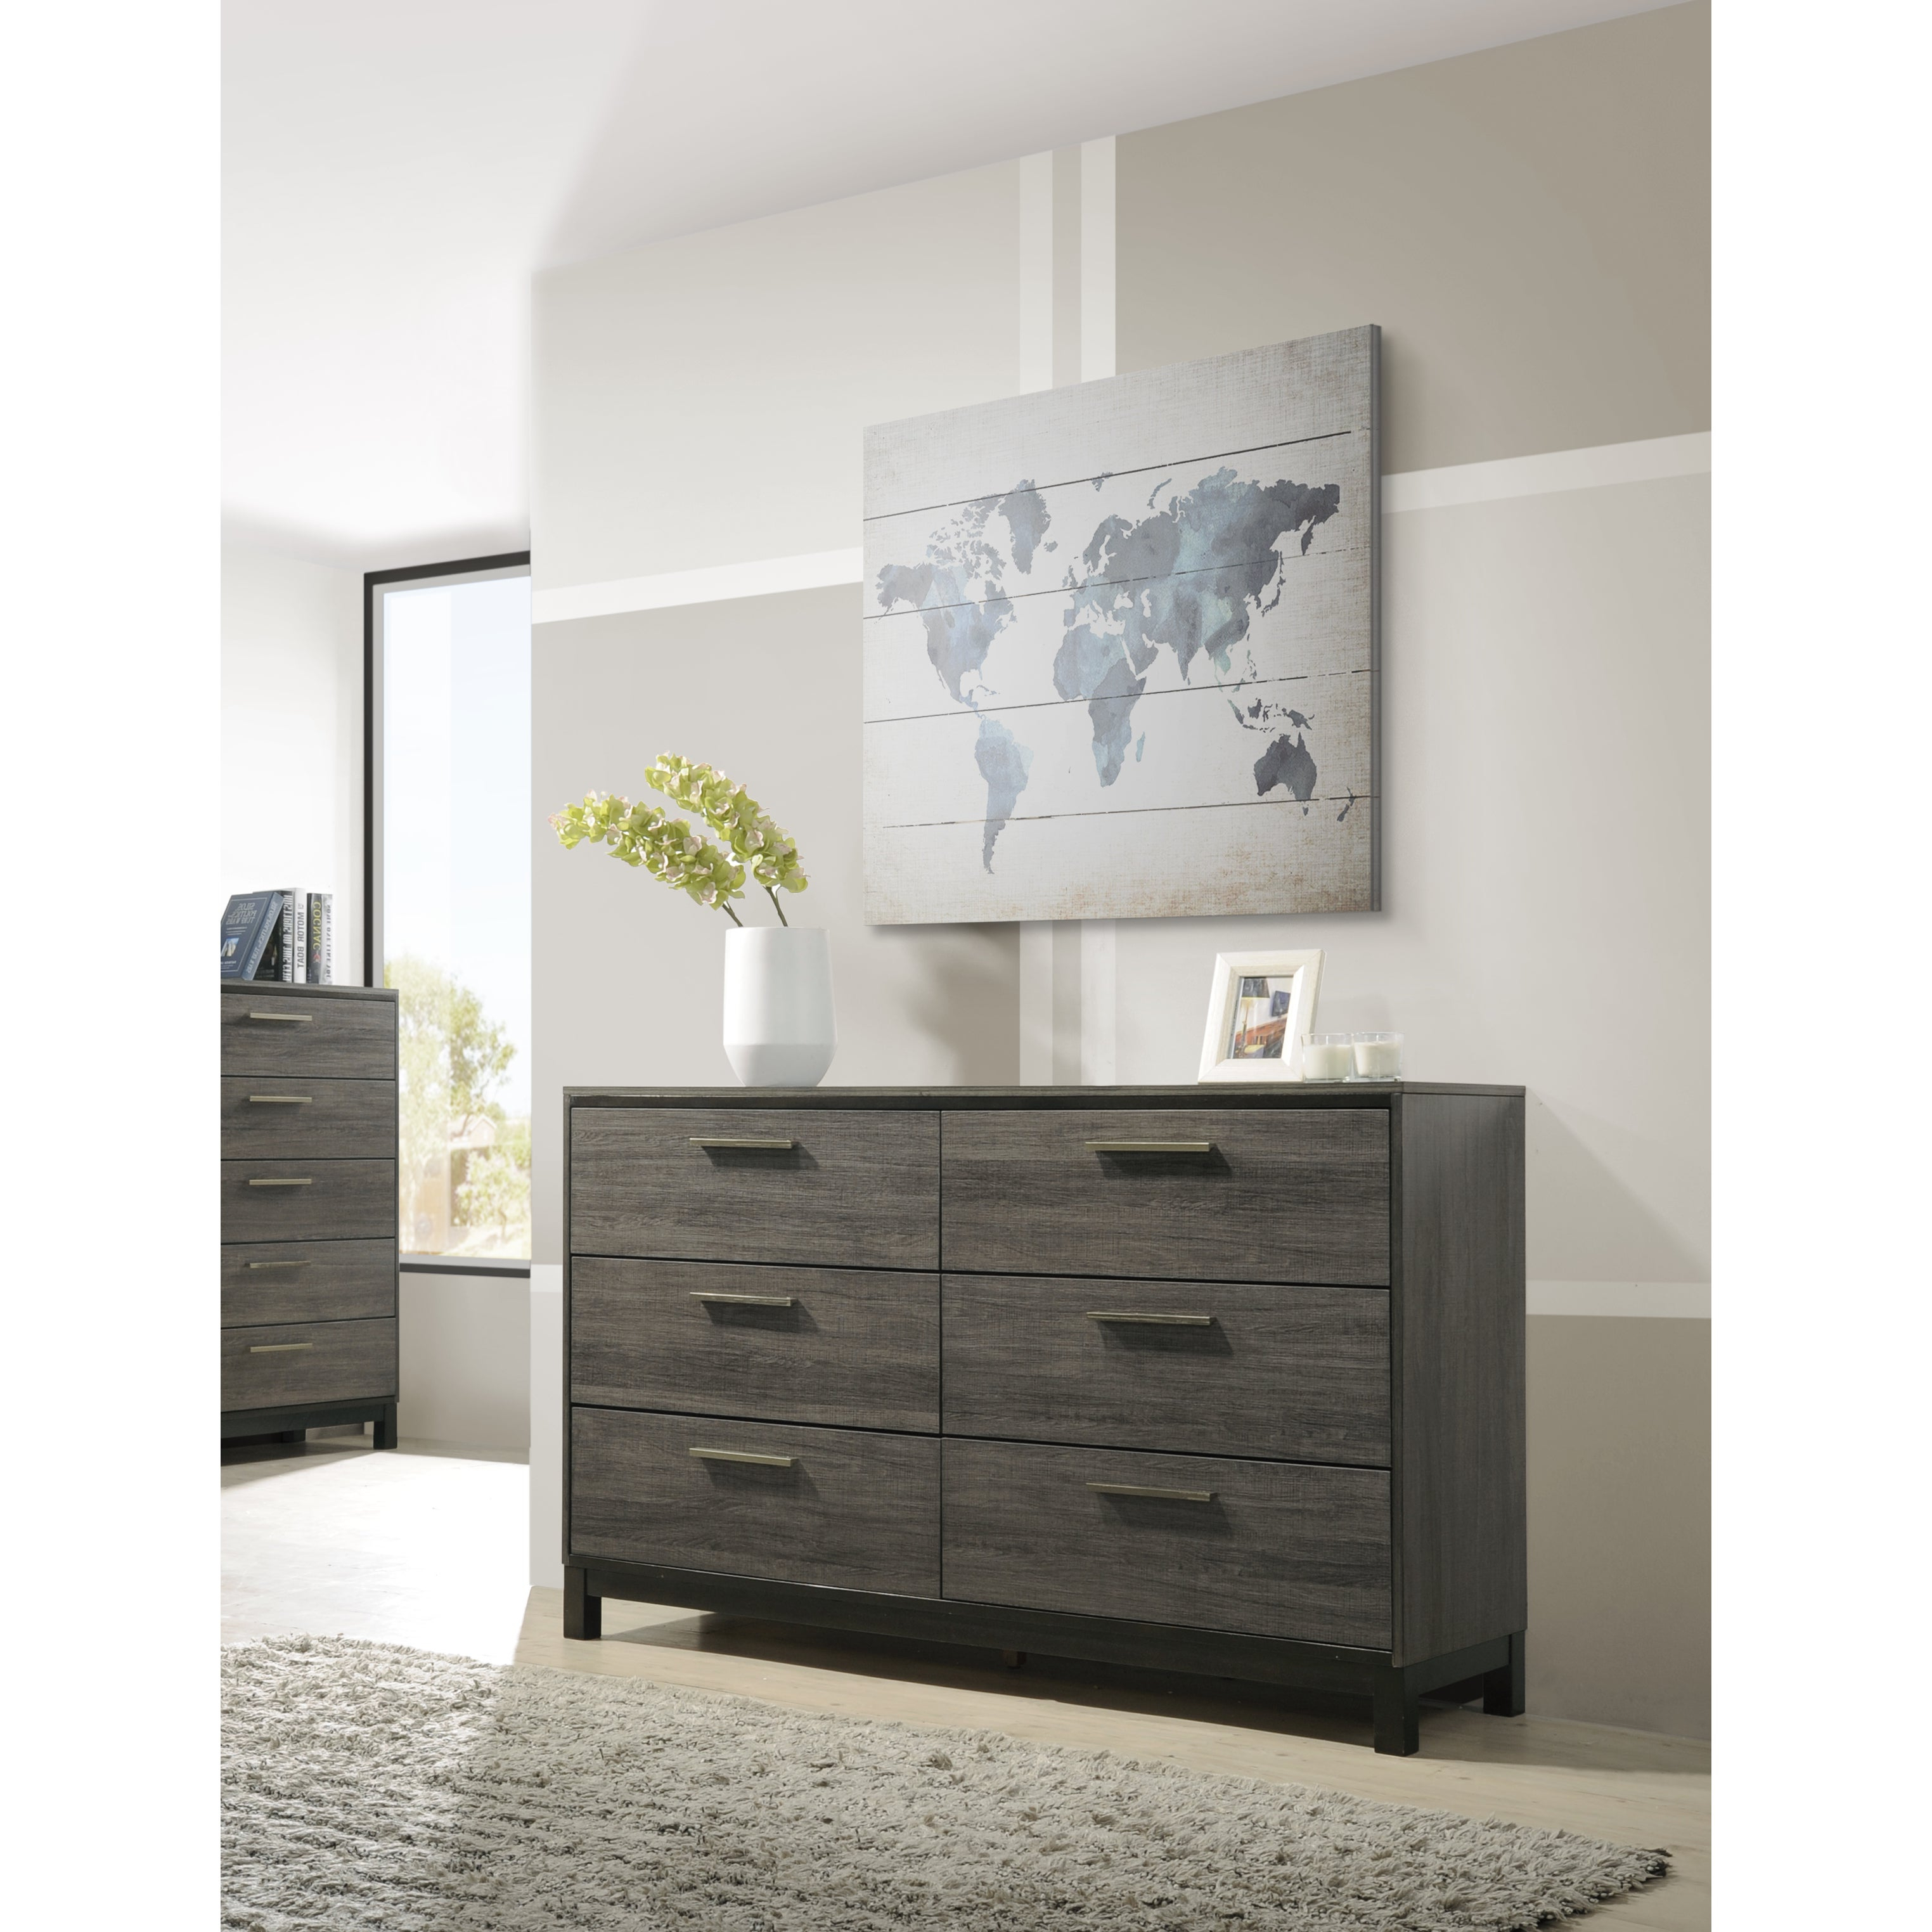 Buy Size 9 Drawer Dressers & Chests Online At Overstock With Jessenia Sideboards (View 2 of 20)